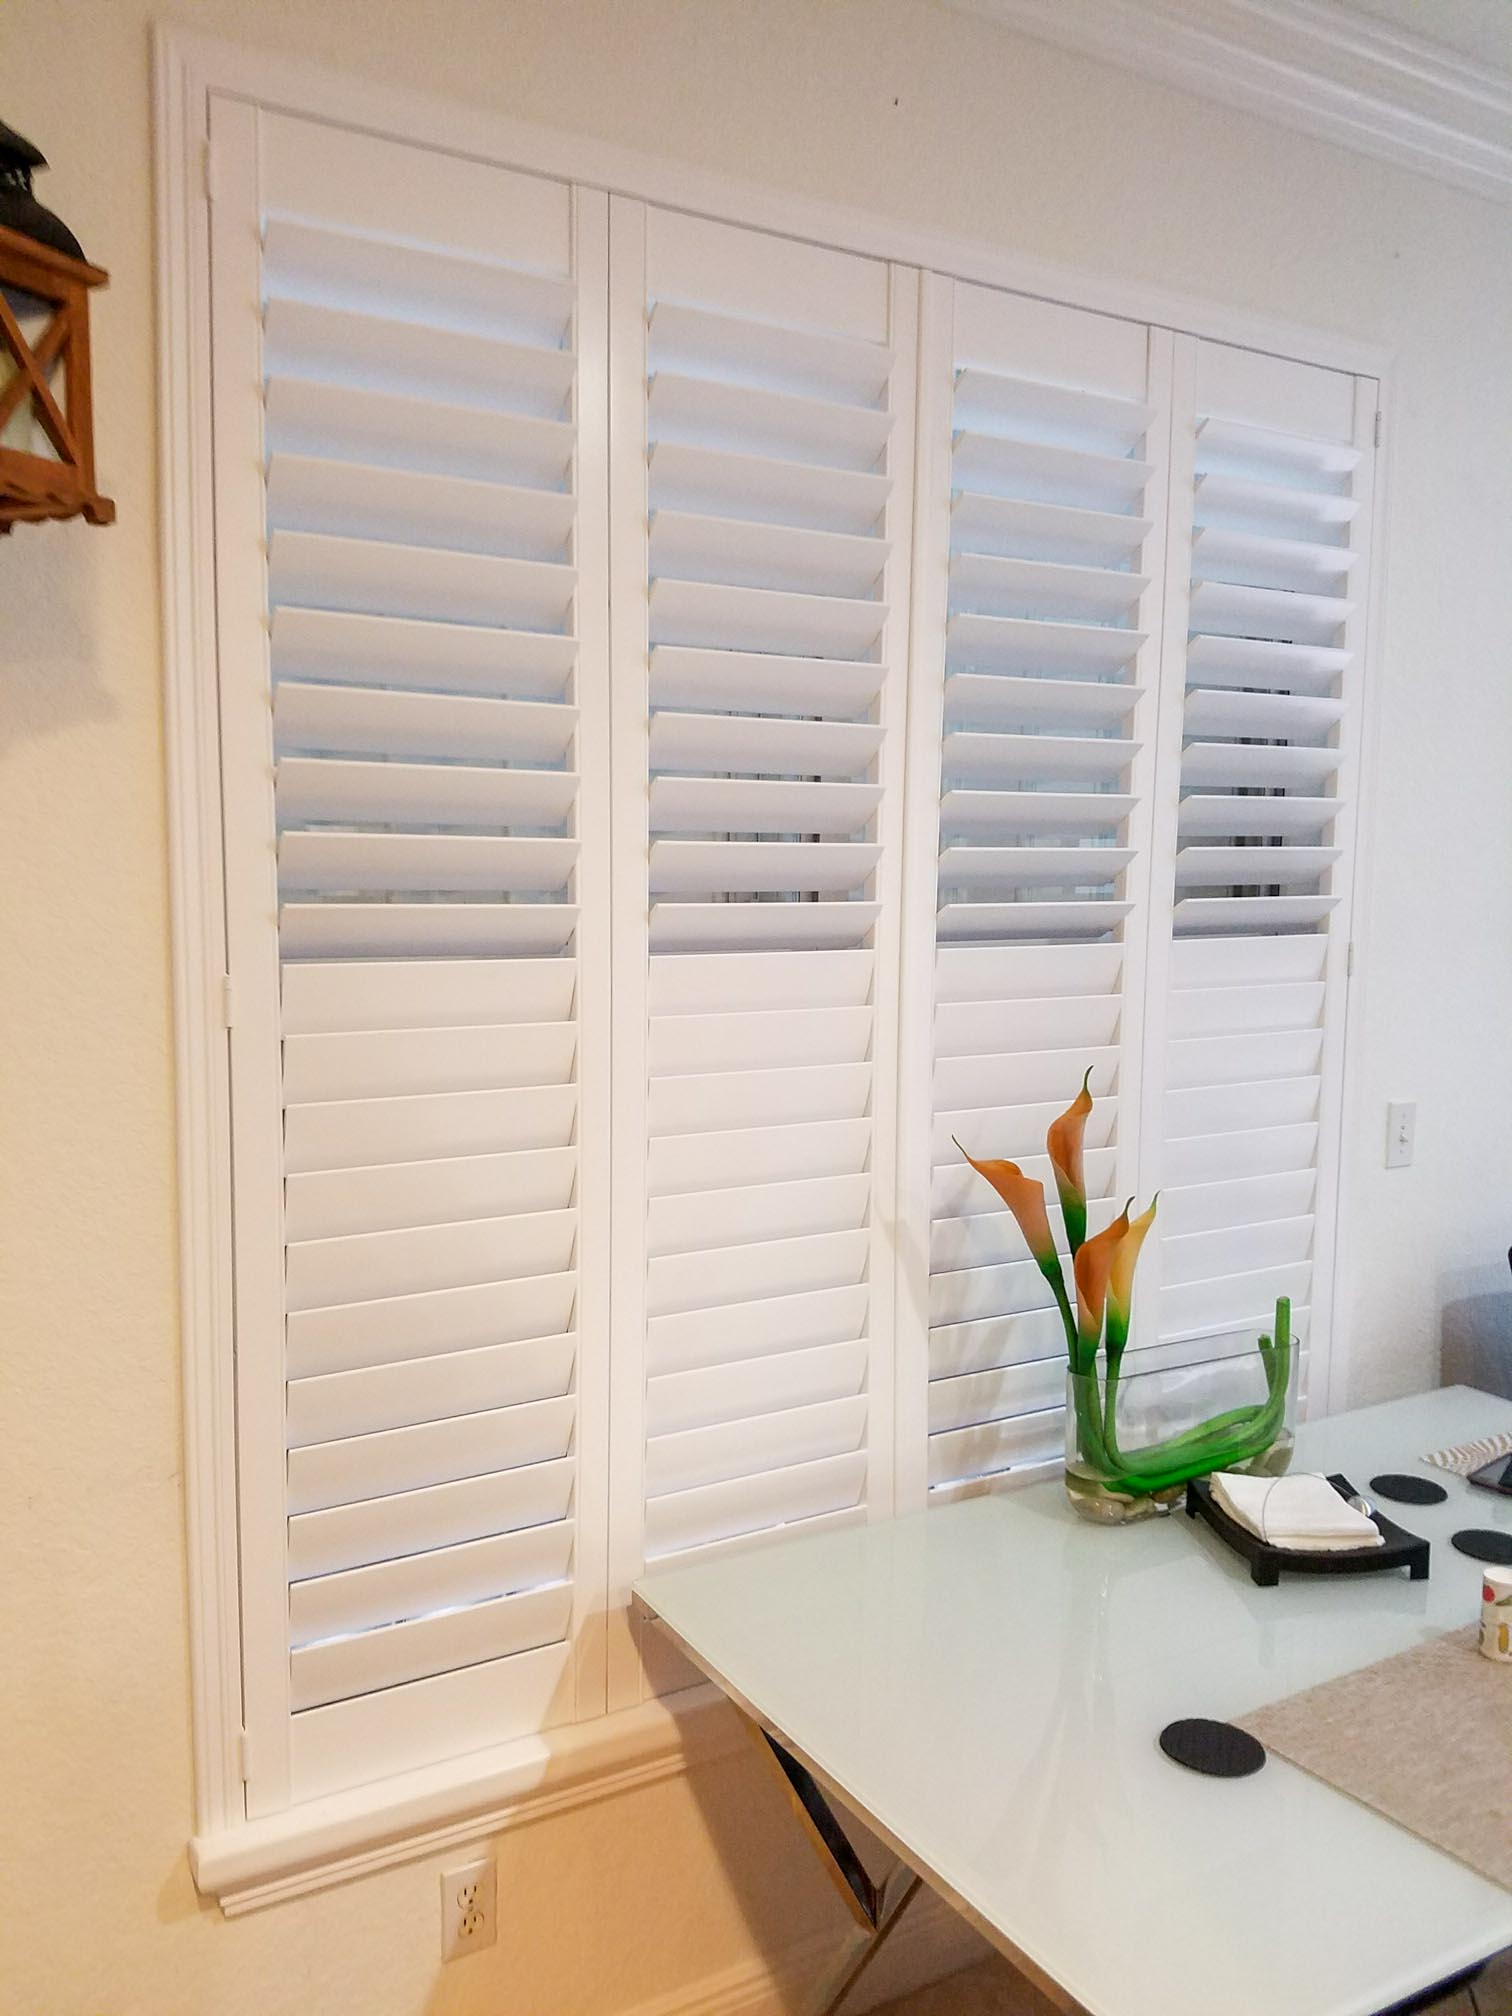 plantation shutters gallery PLANTATION SHUTTERS GALLERY 20161006 142428